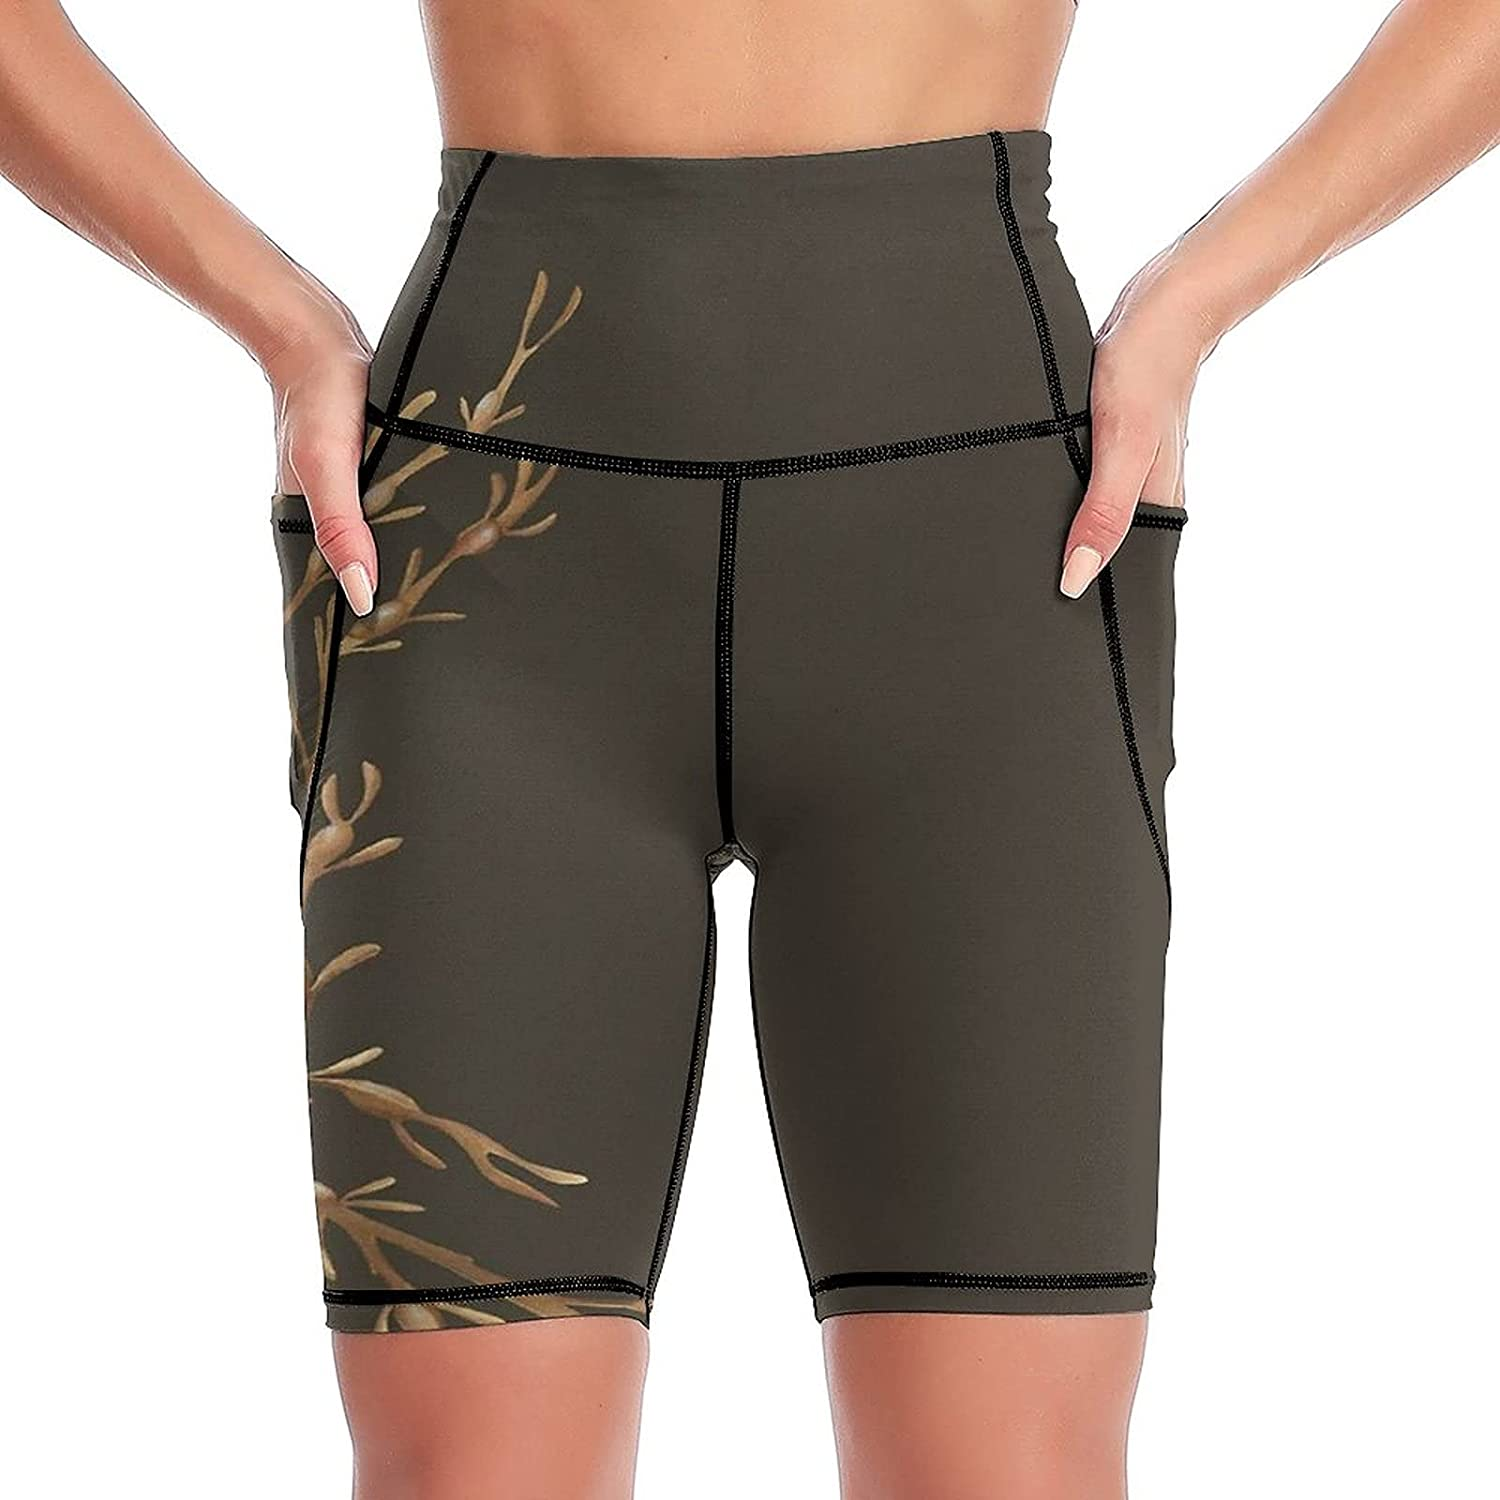 Shenghengyu Knotted Wrack Women's Super intense SALE Short Side Pockets W High Yoga Max 67% OFF